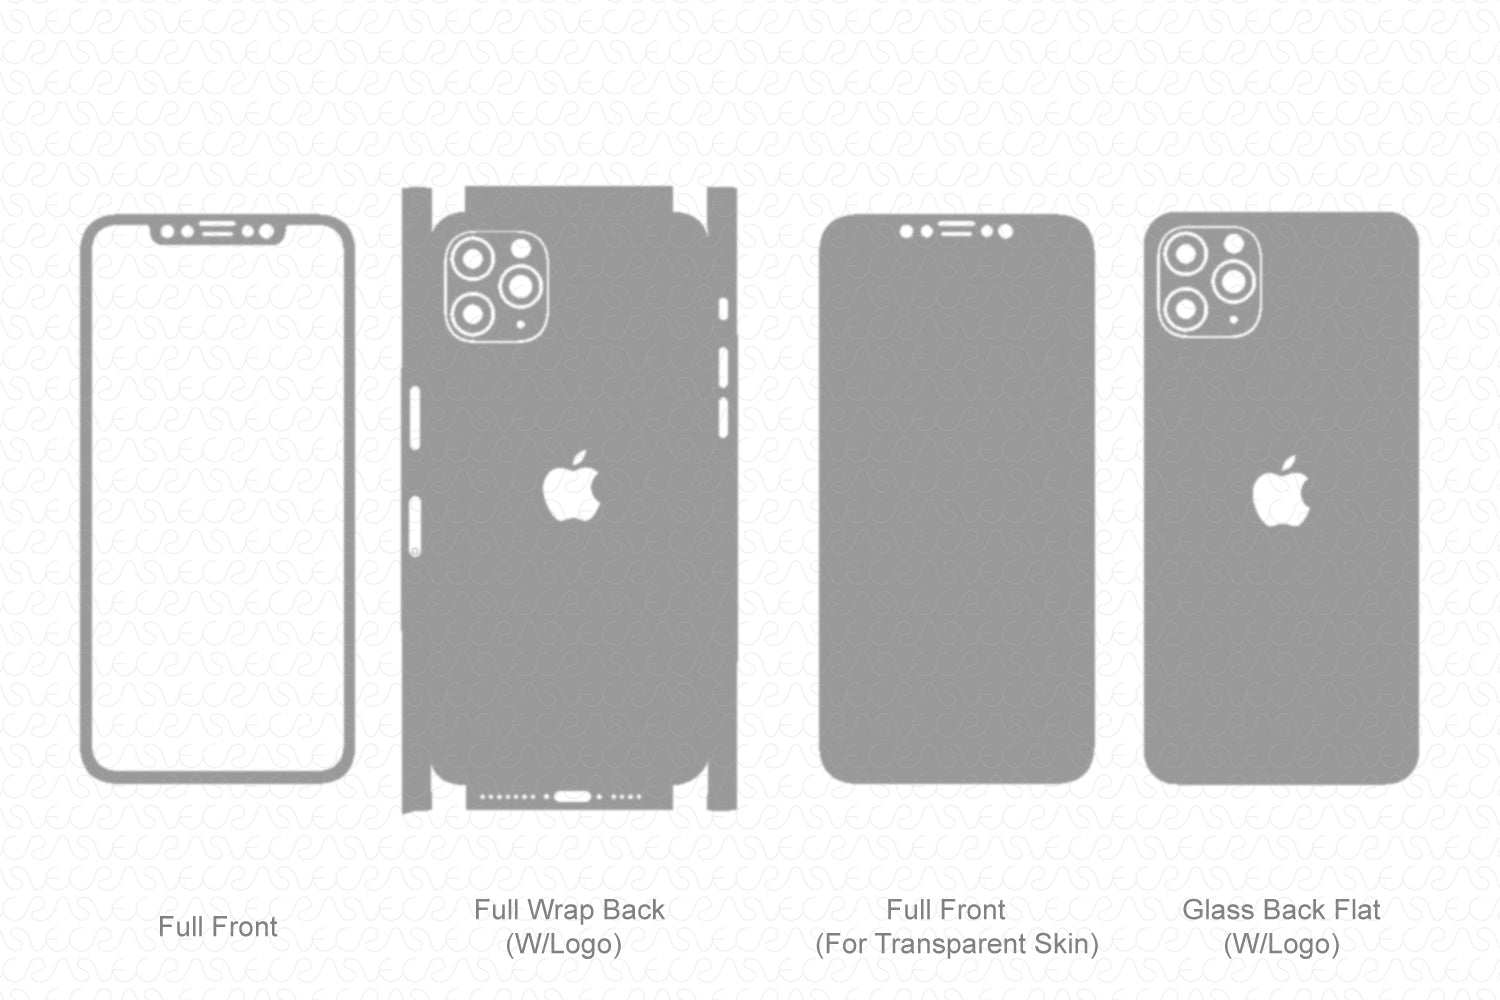 iPhone 11 Pro (2019) Skin Template Vector